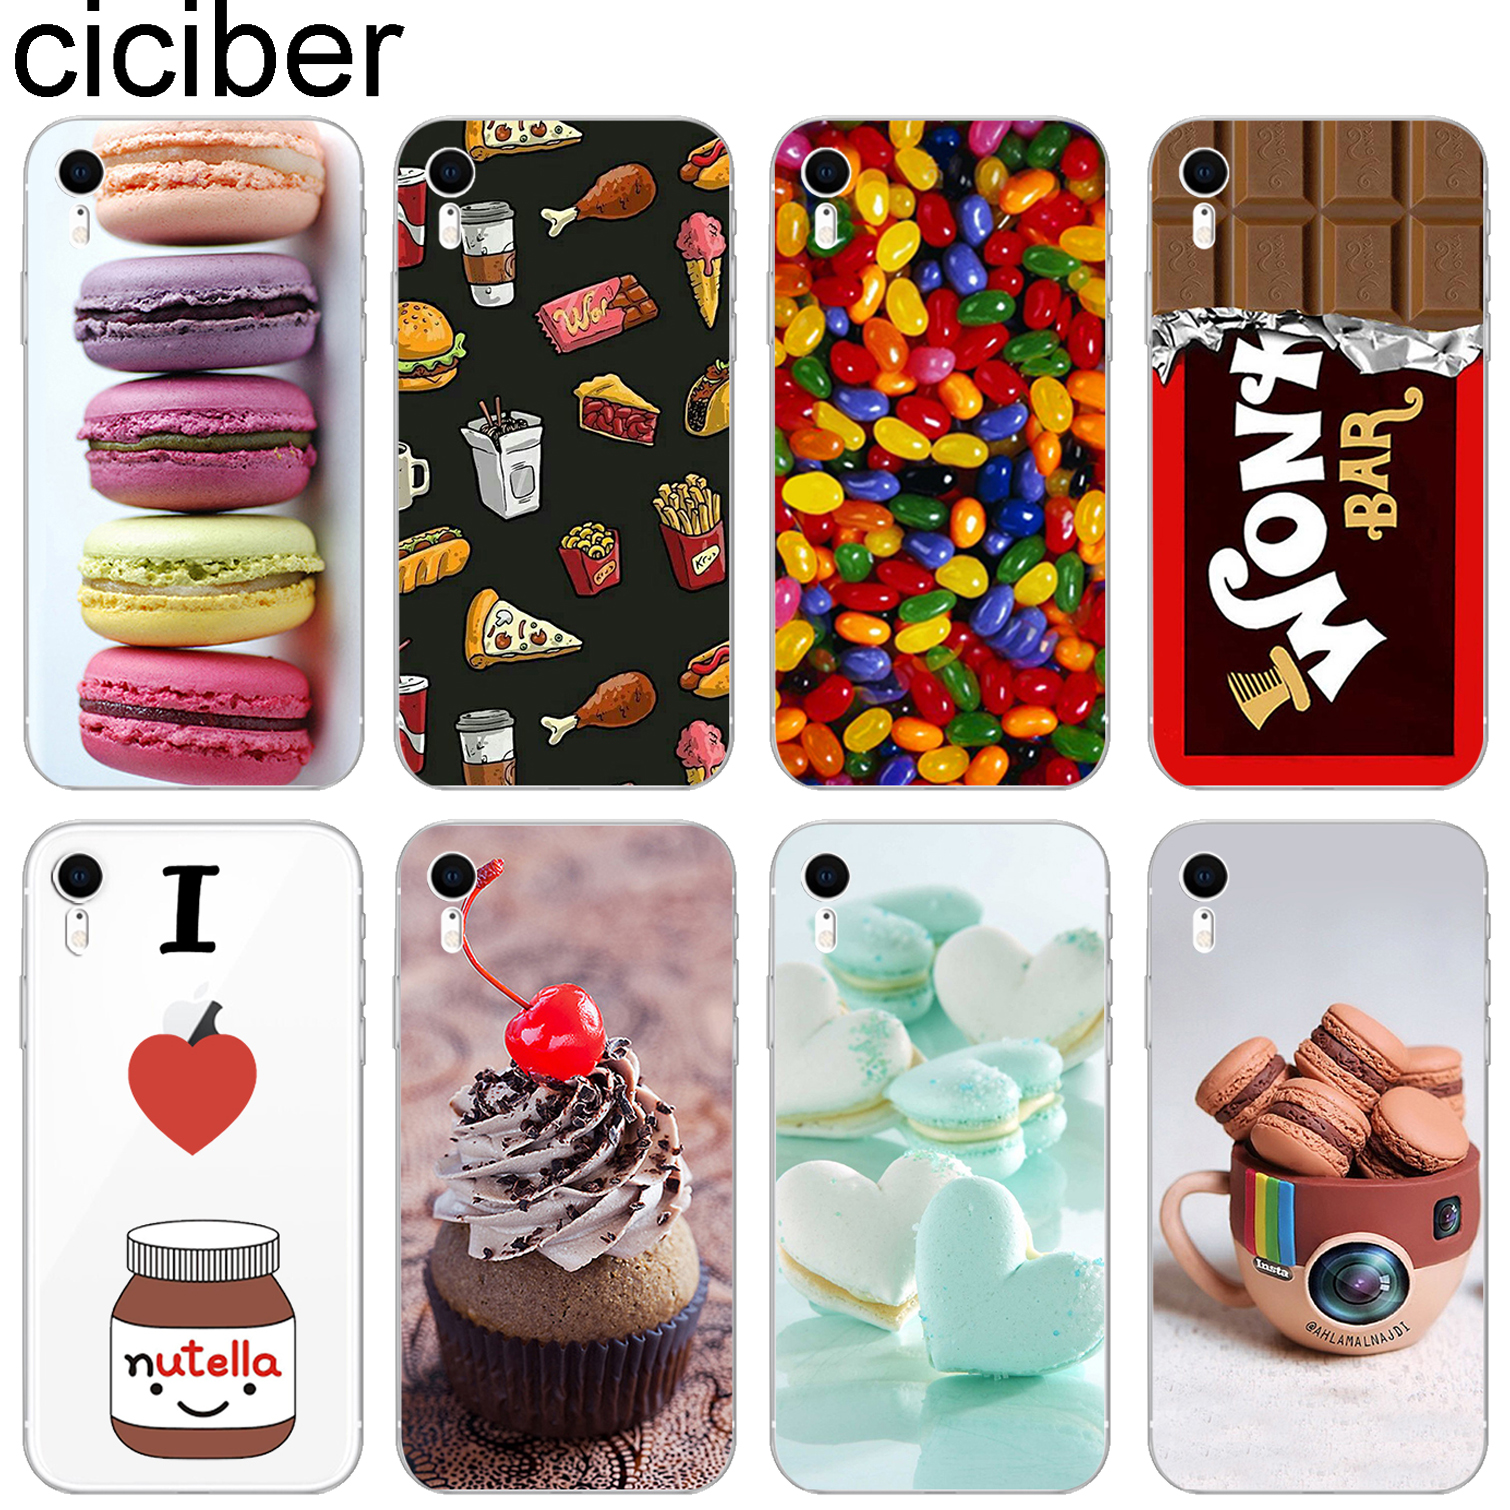 ciciber Food Pattern Design Soft Silicone Phone Cases Cover for Iphone 8 7 6 6S Plus 5S SE X XR XS MAX Coque Tumblr Nutella hand spinner harry potter